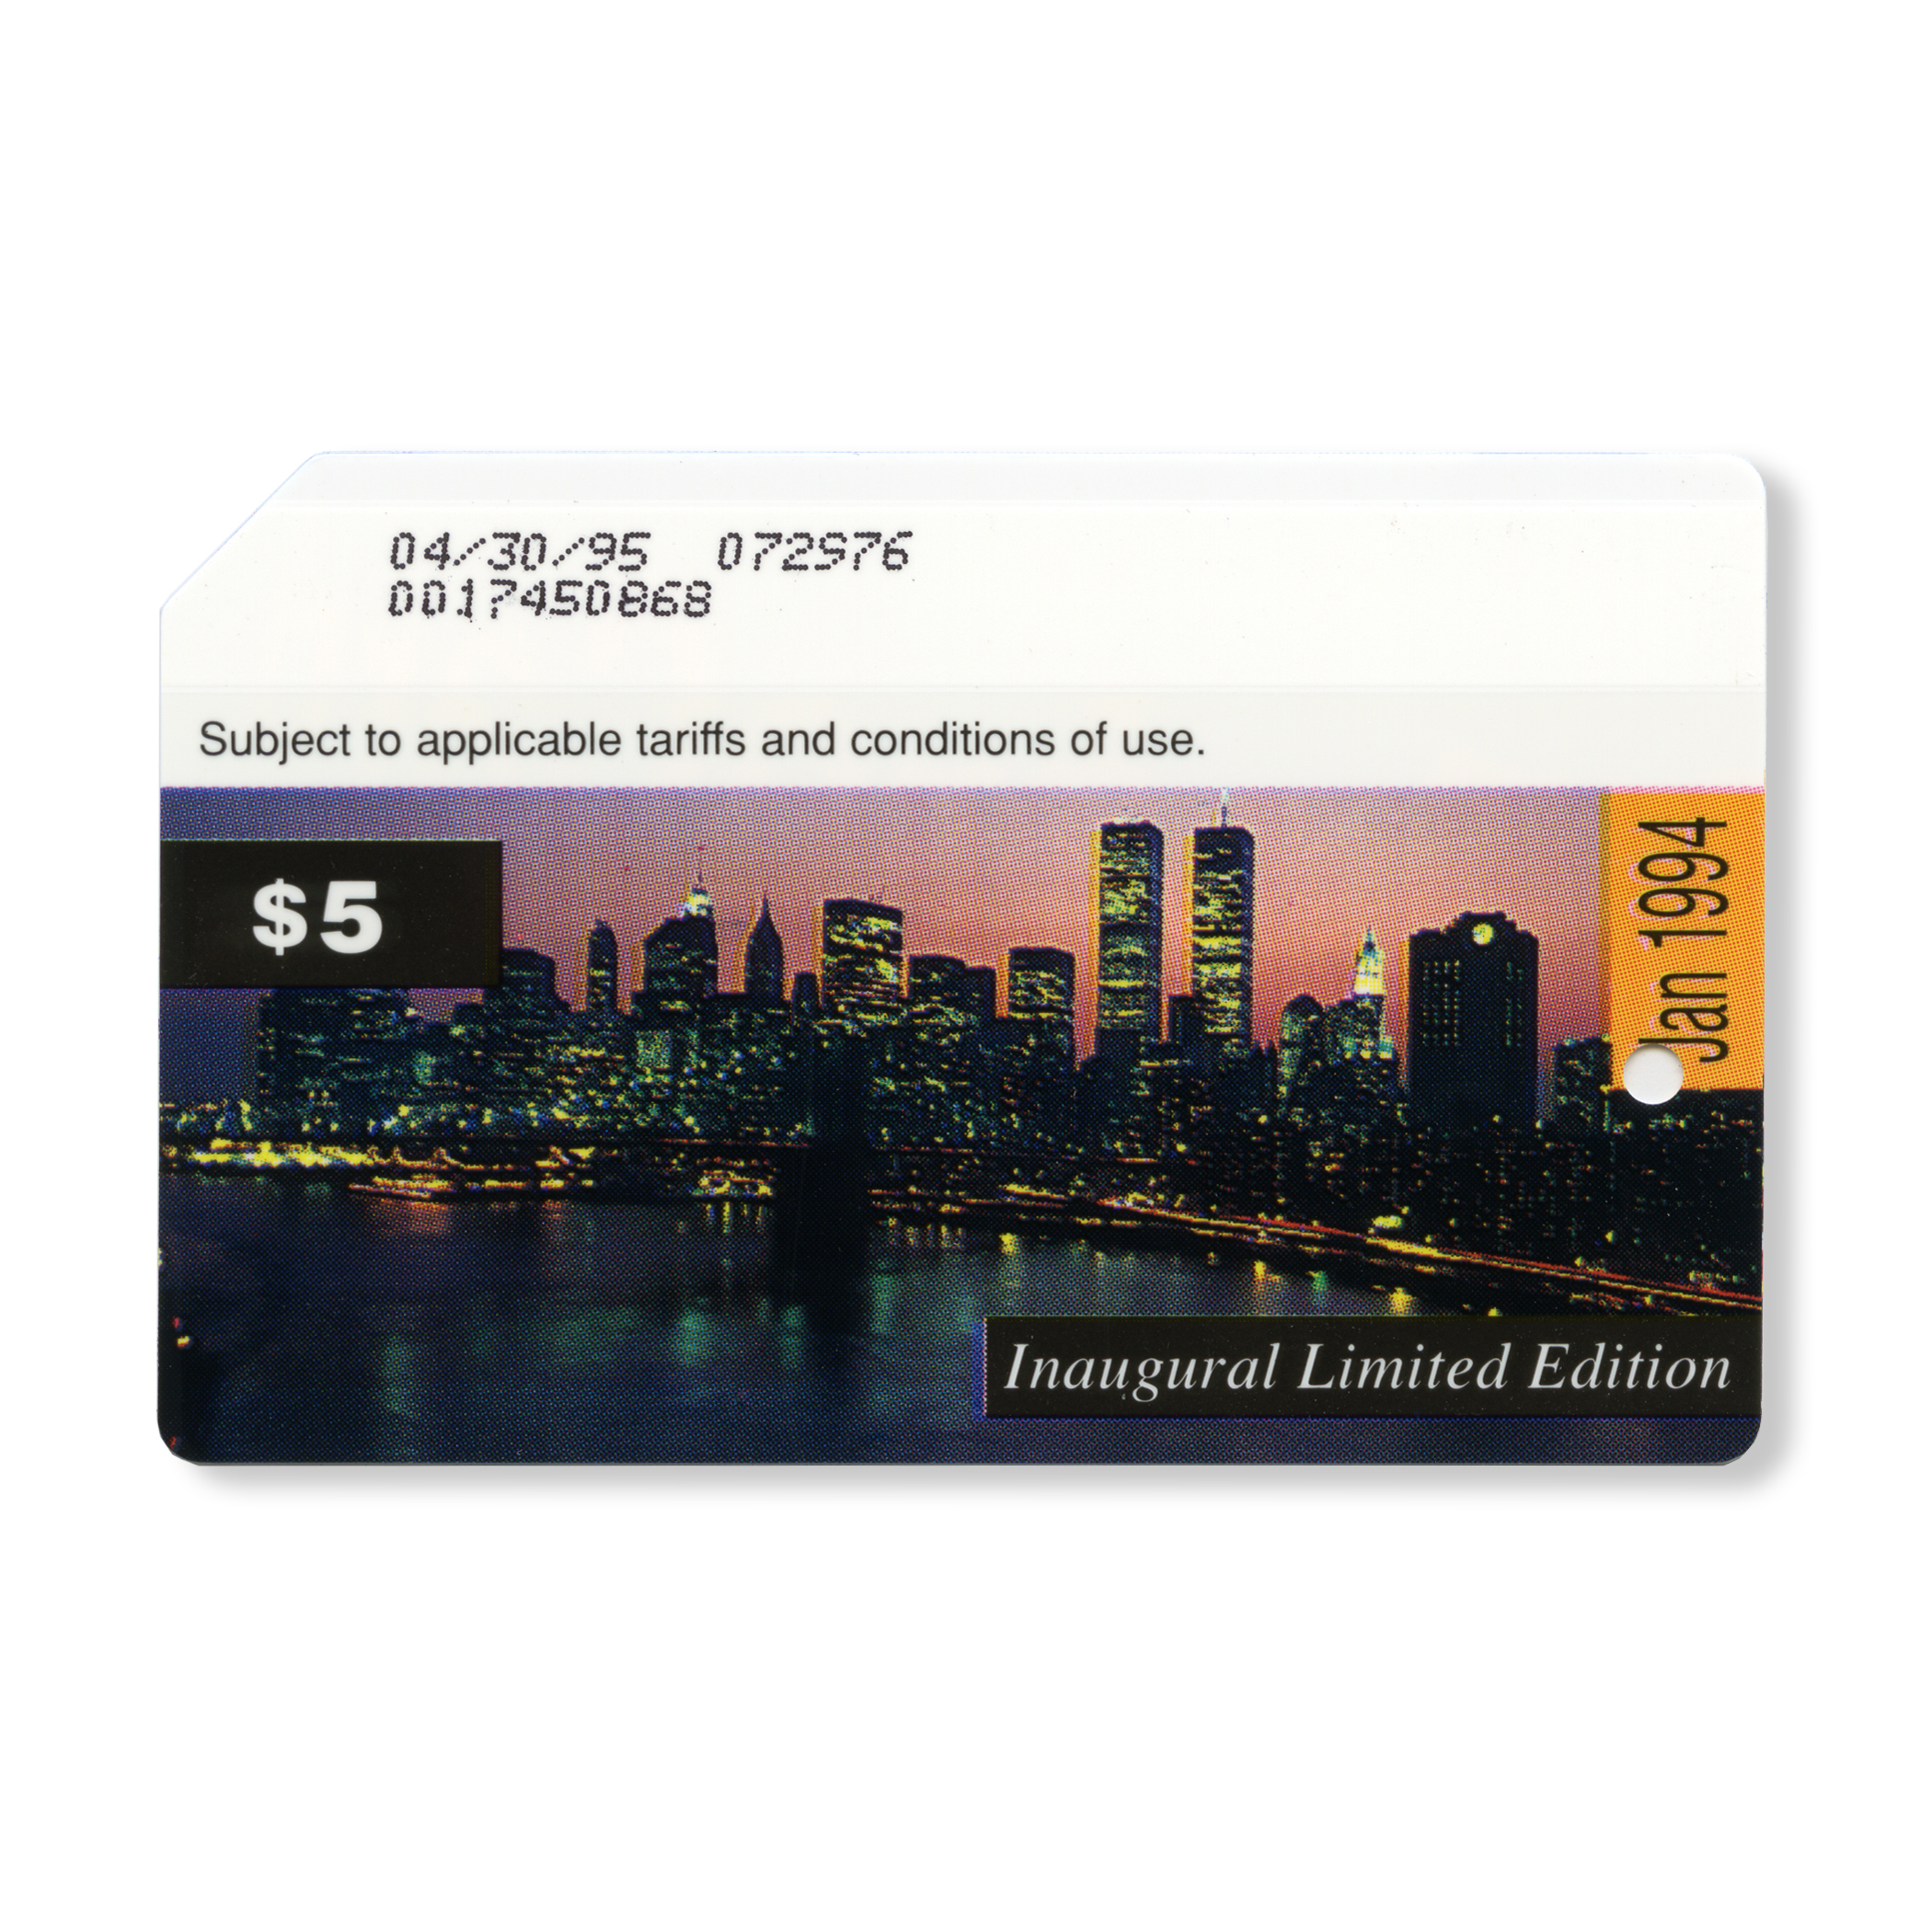 the_nycta_project_blue_metrocard_1994_inaugural_limited_edition_set_twin_towers_brian_kelley.jpg